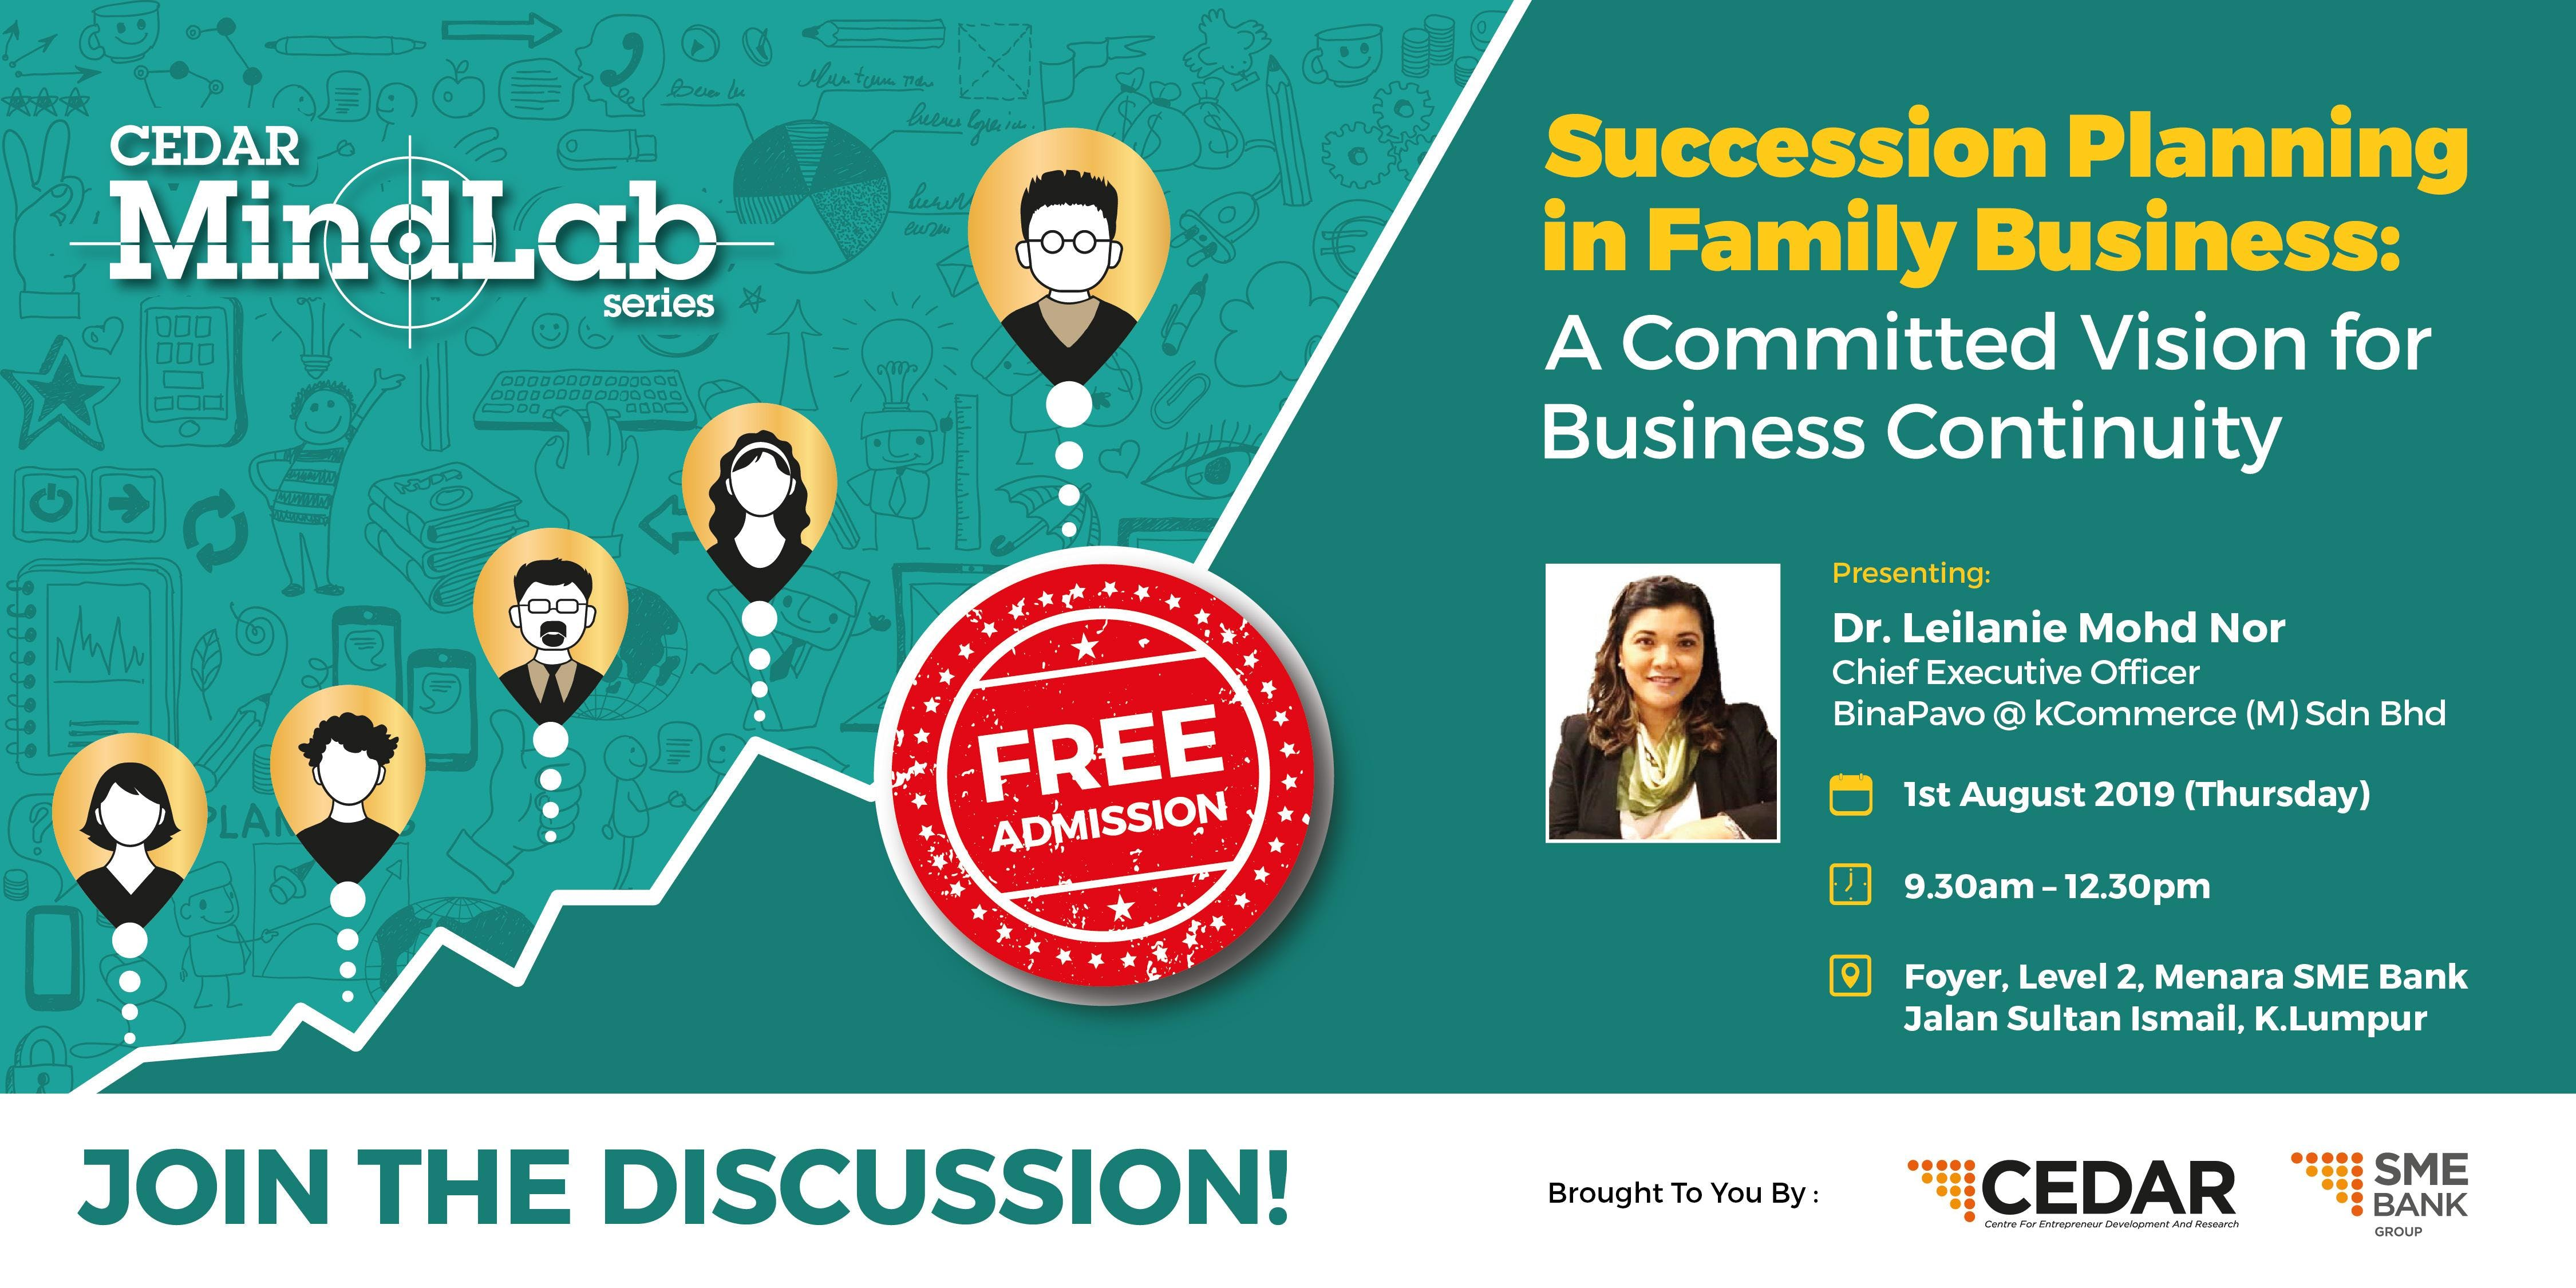 CEDAR MindLab Series: Succession Planning in Family Business: A Committed Vision for Business Continuity